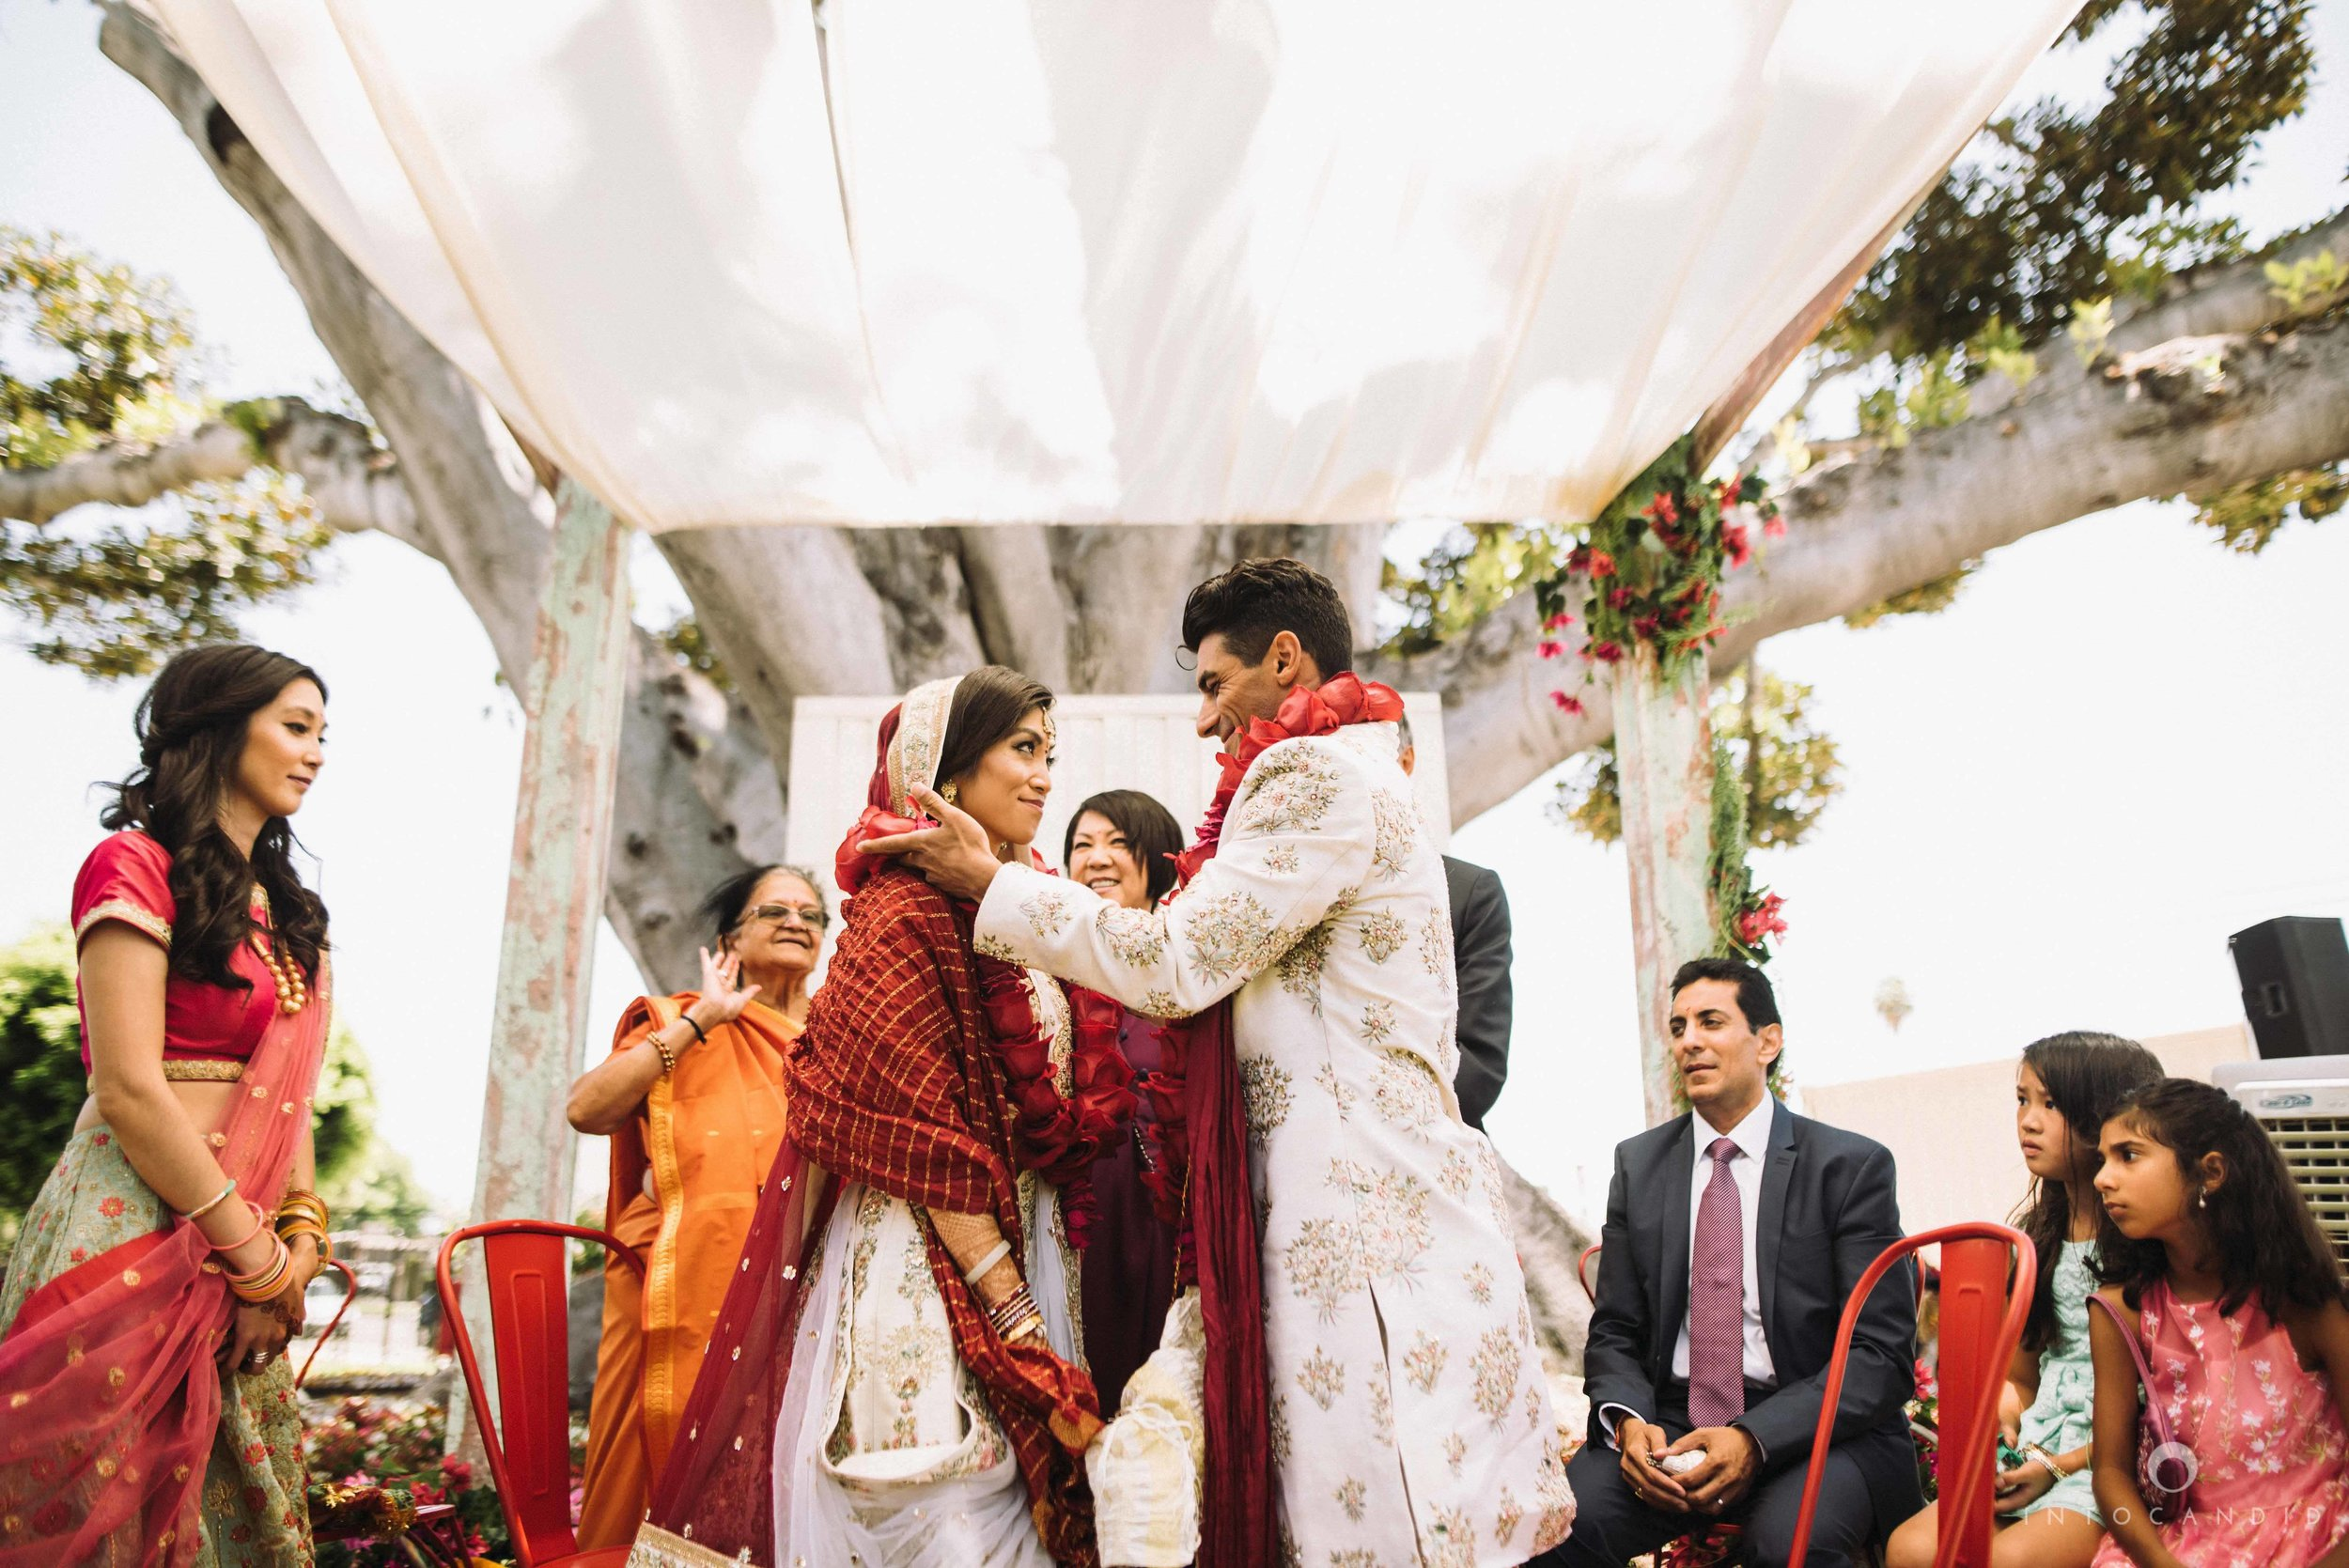 LosAngeles_Indian_Wedding_Photographer_AS_098.jpg